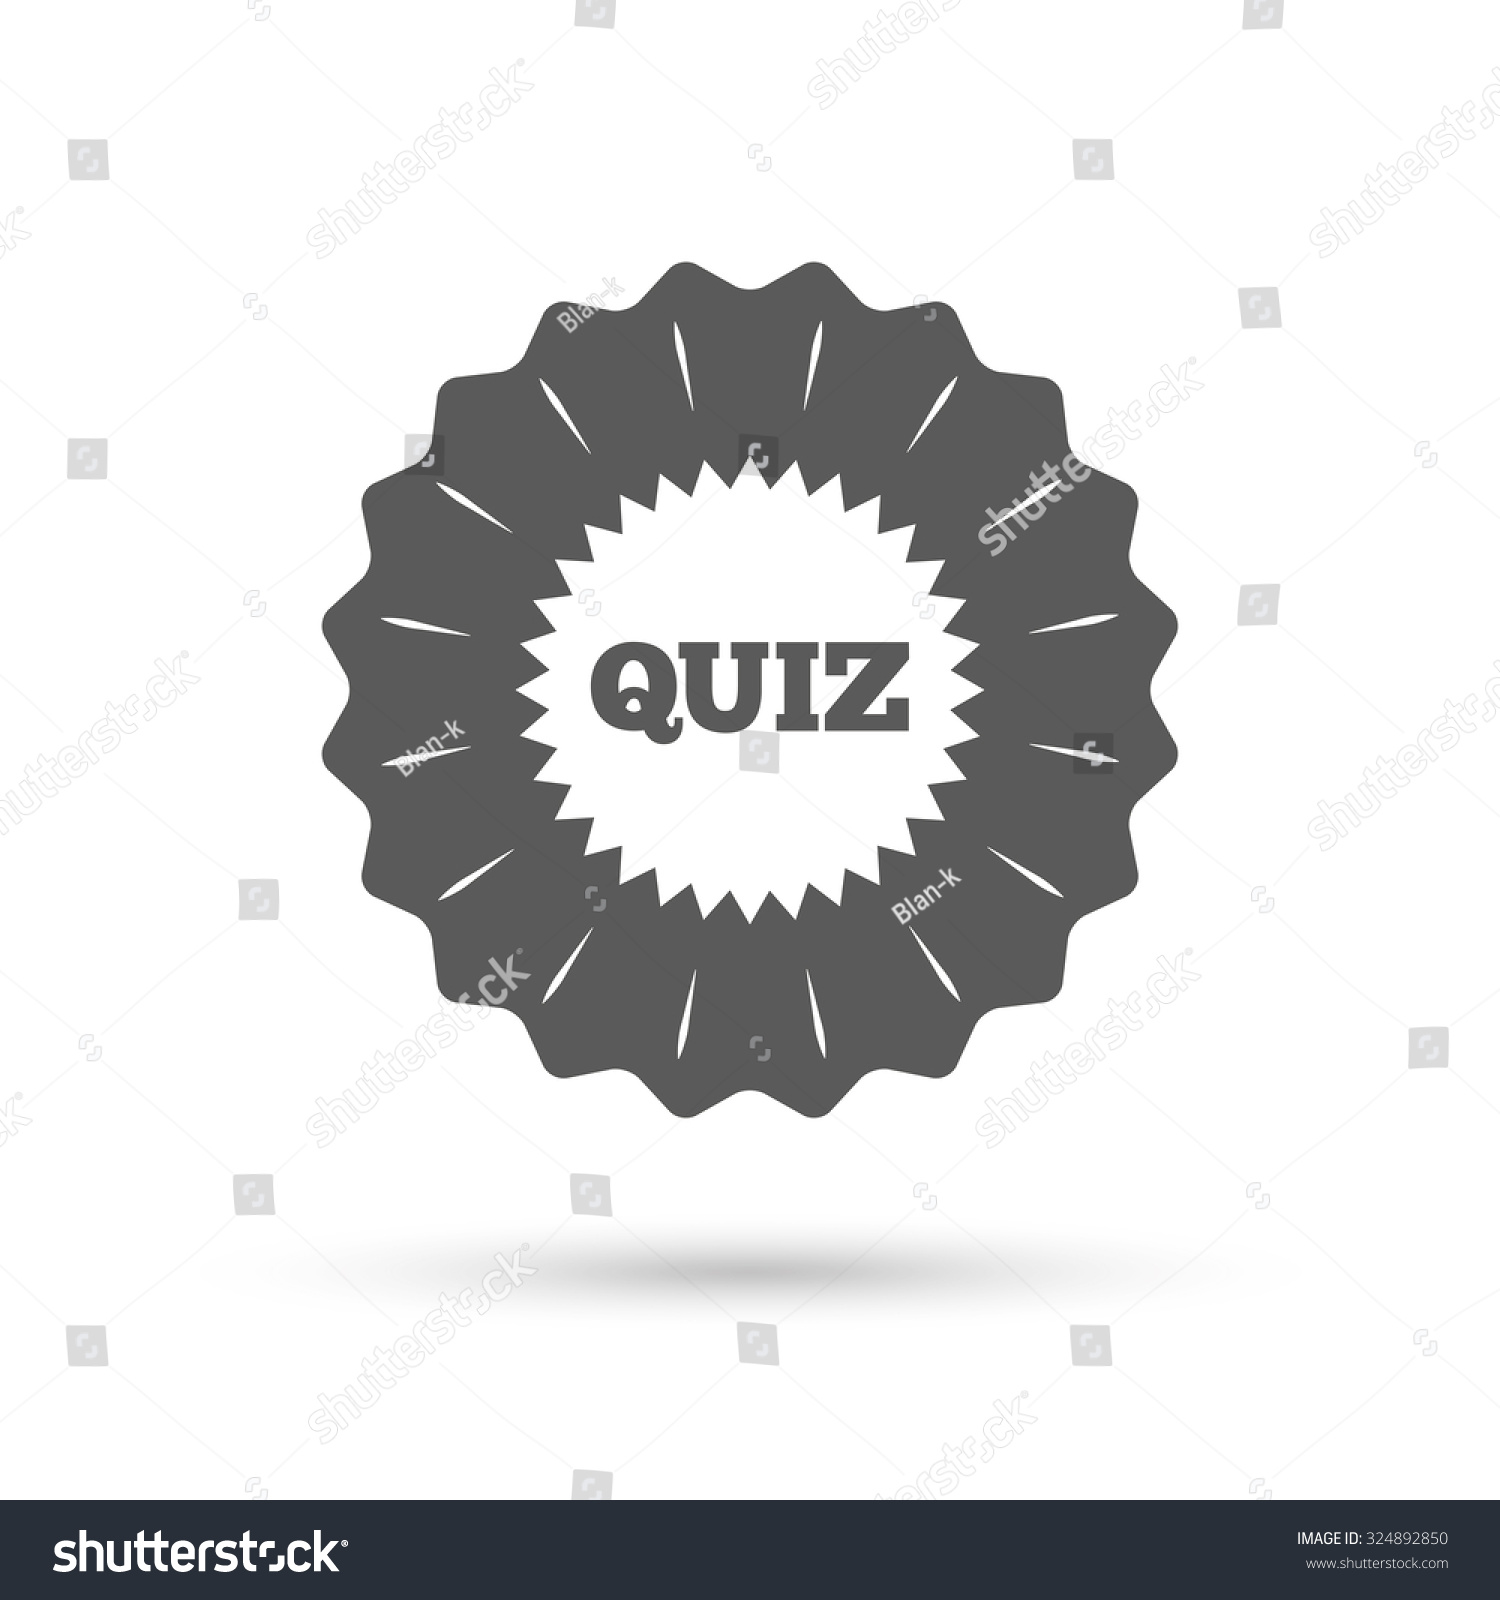 vintage emblem medal quiz star sign stock vector  quiz star sign icon questions and answers game symbol classic